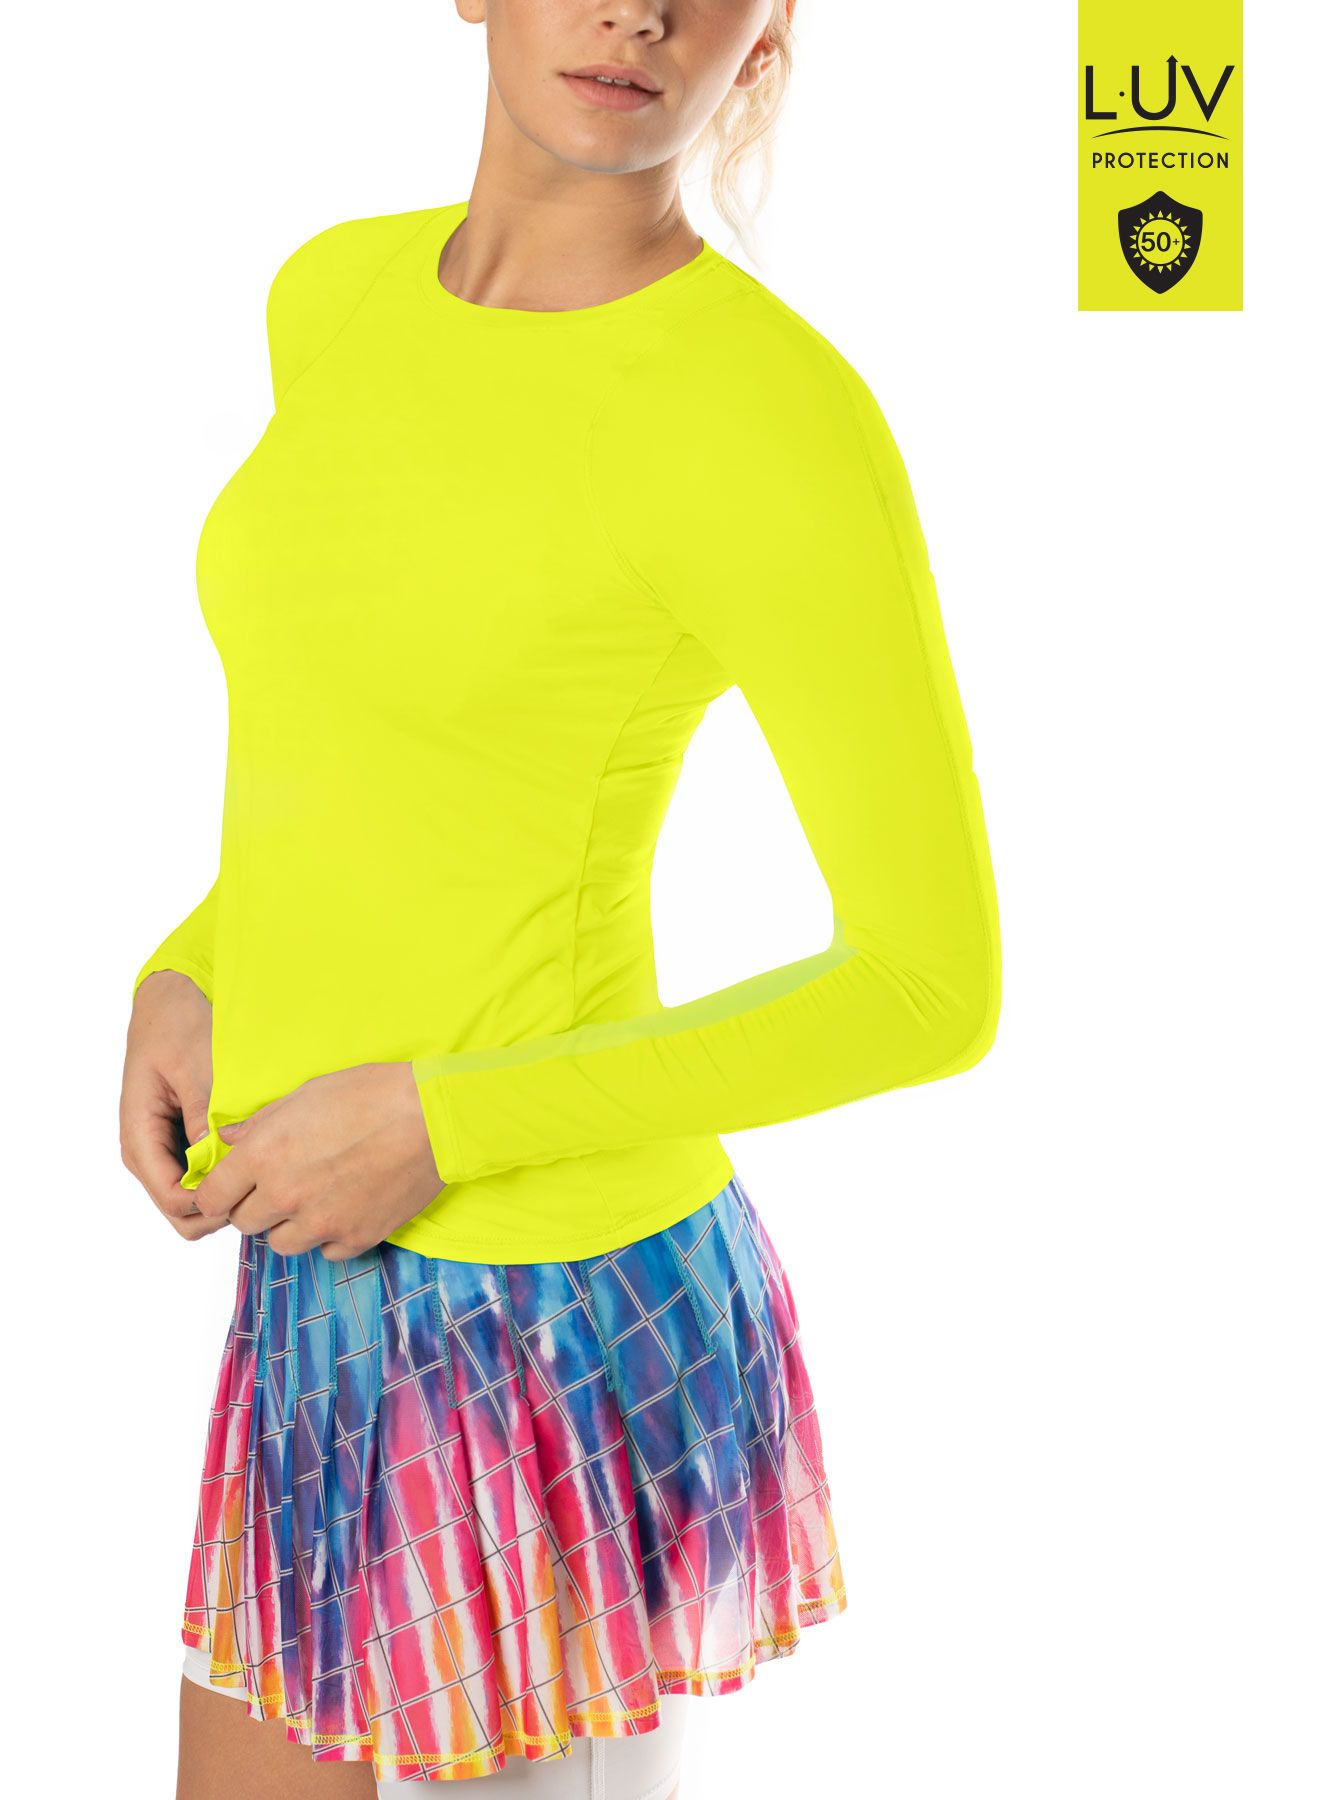 LUV Protection Breeze Long-Sleeve Crew